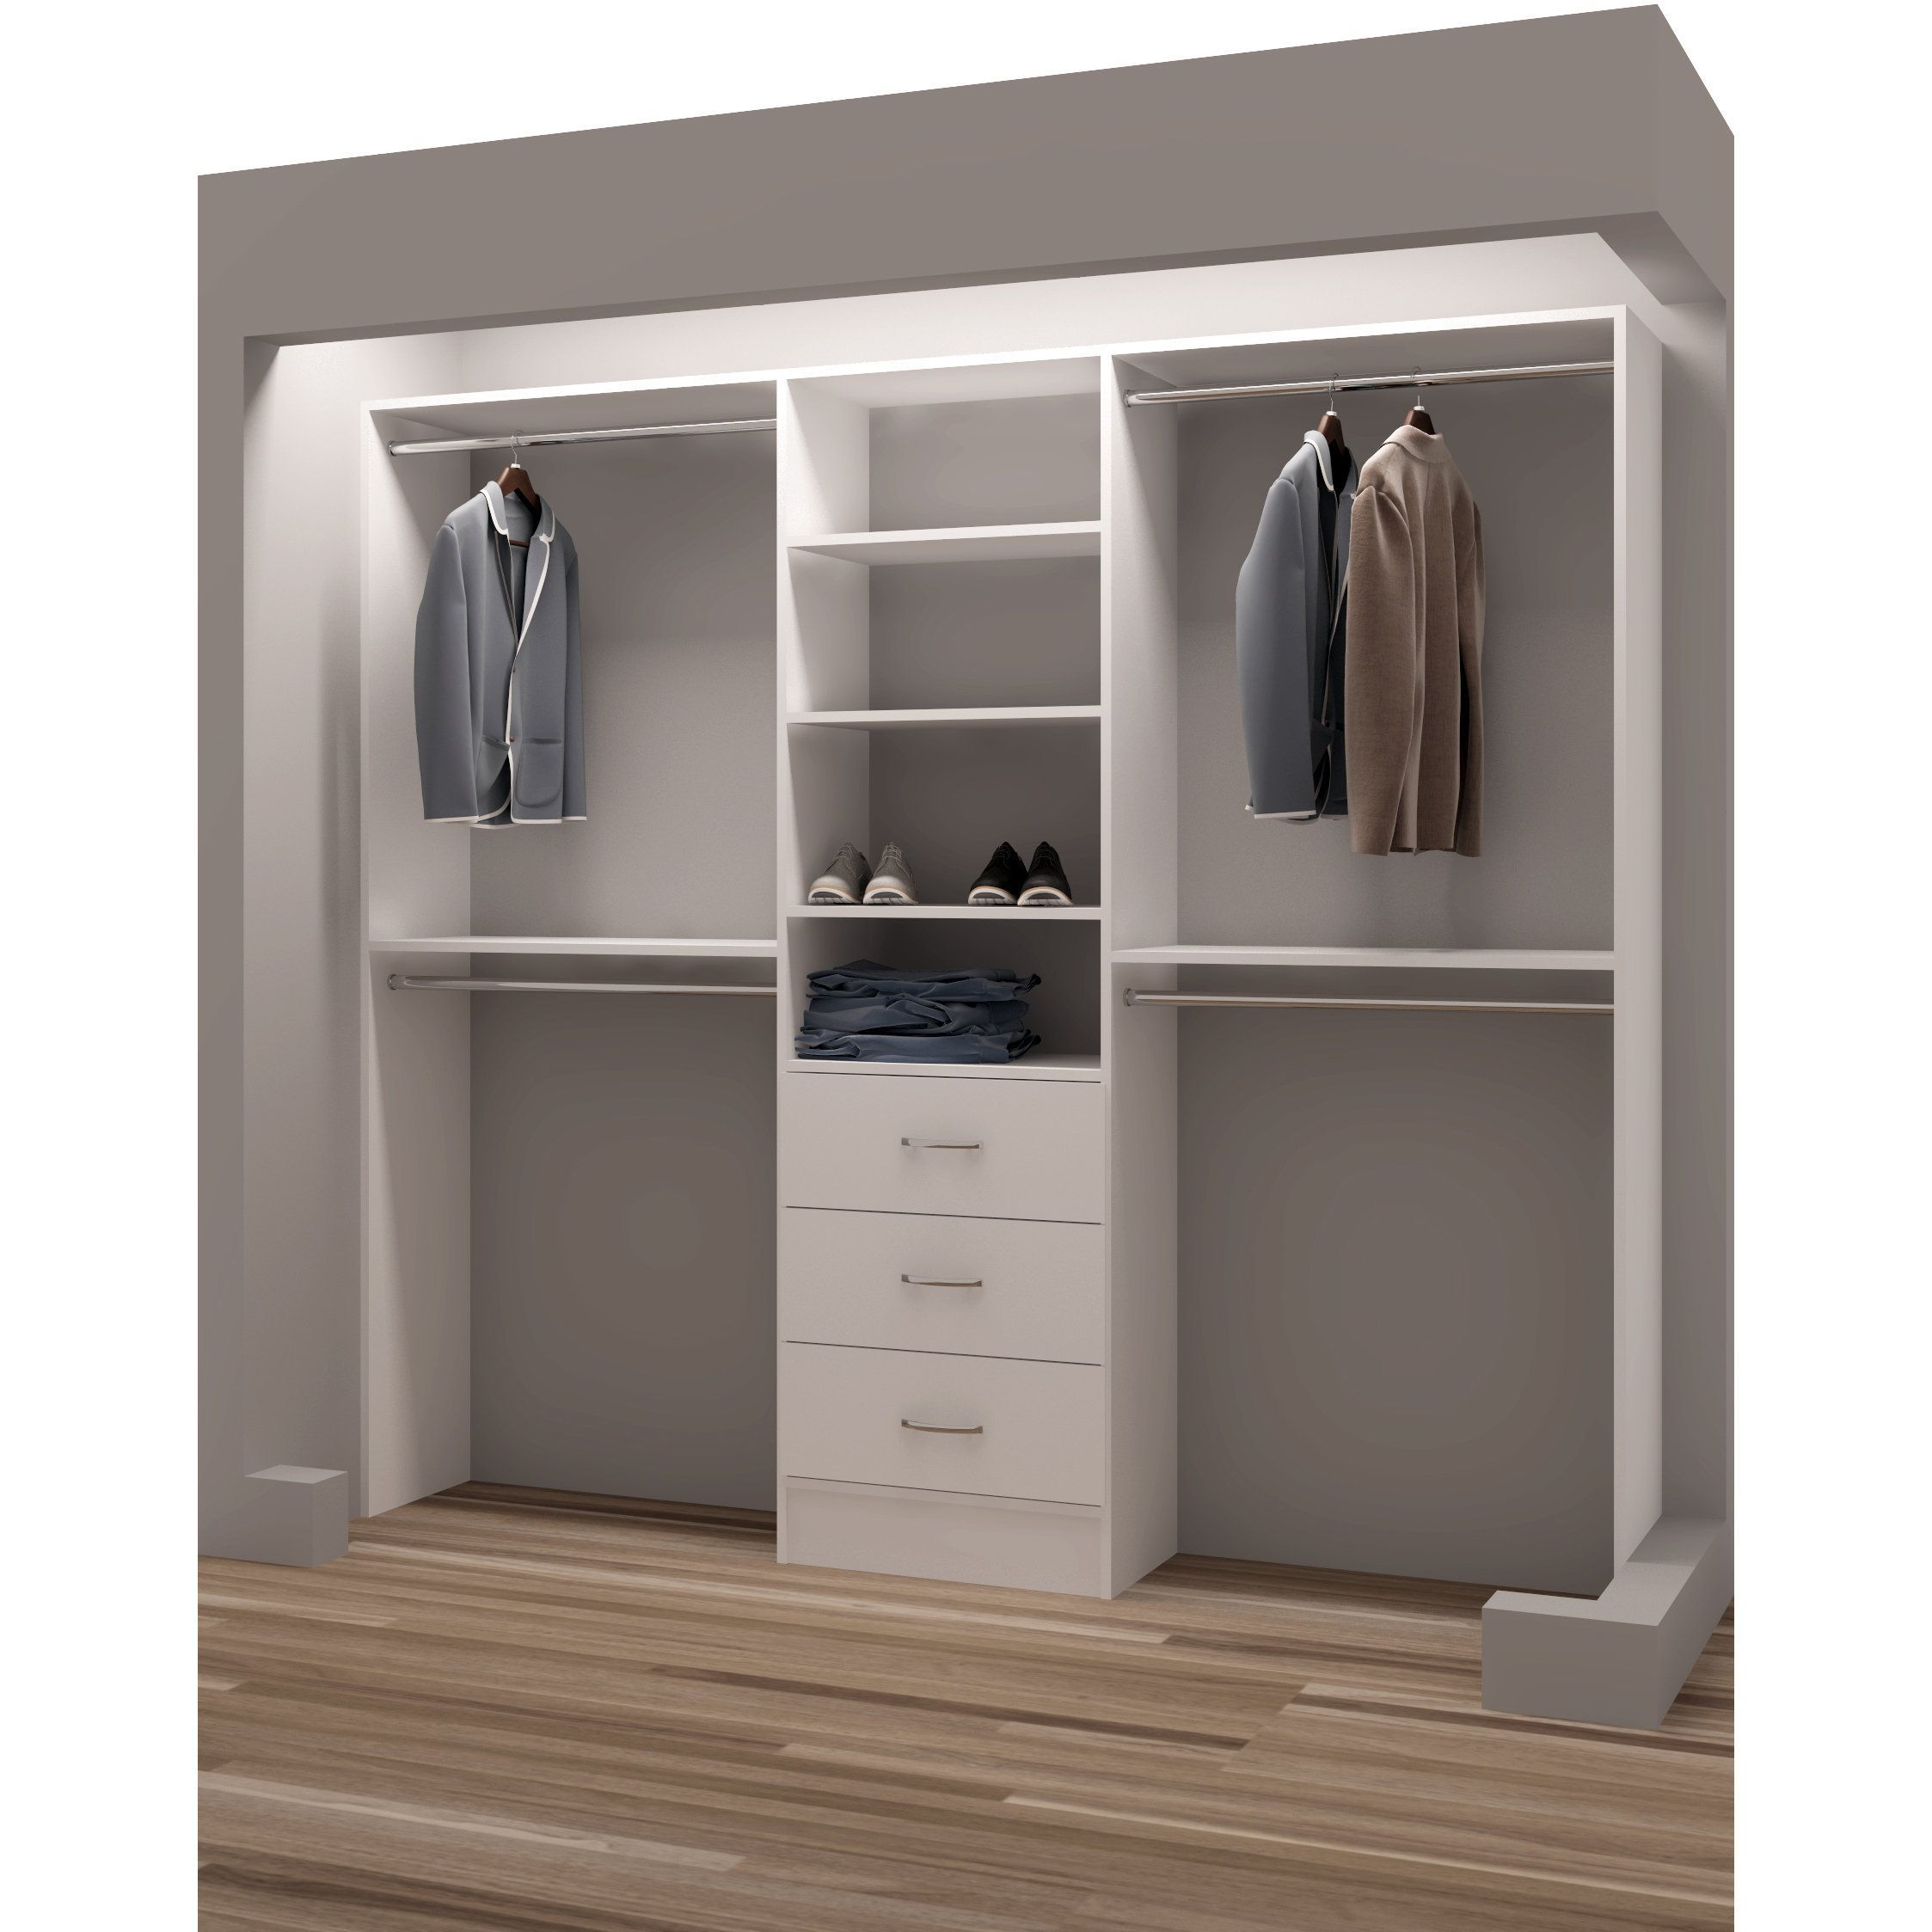 Diy Organization Ideas For Closets Tidysquares Classic White Wood 87 Inch Reach In Closet